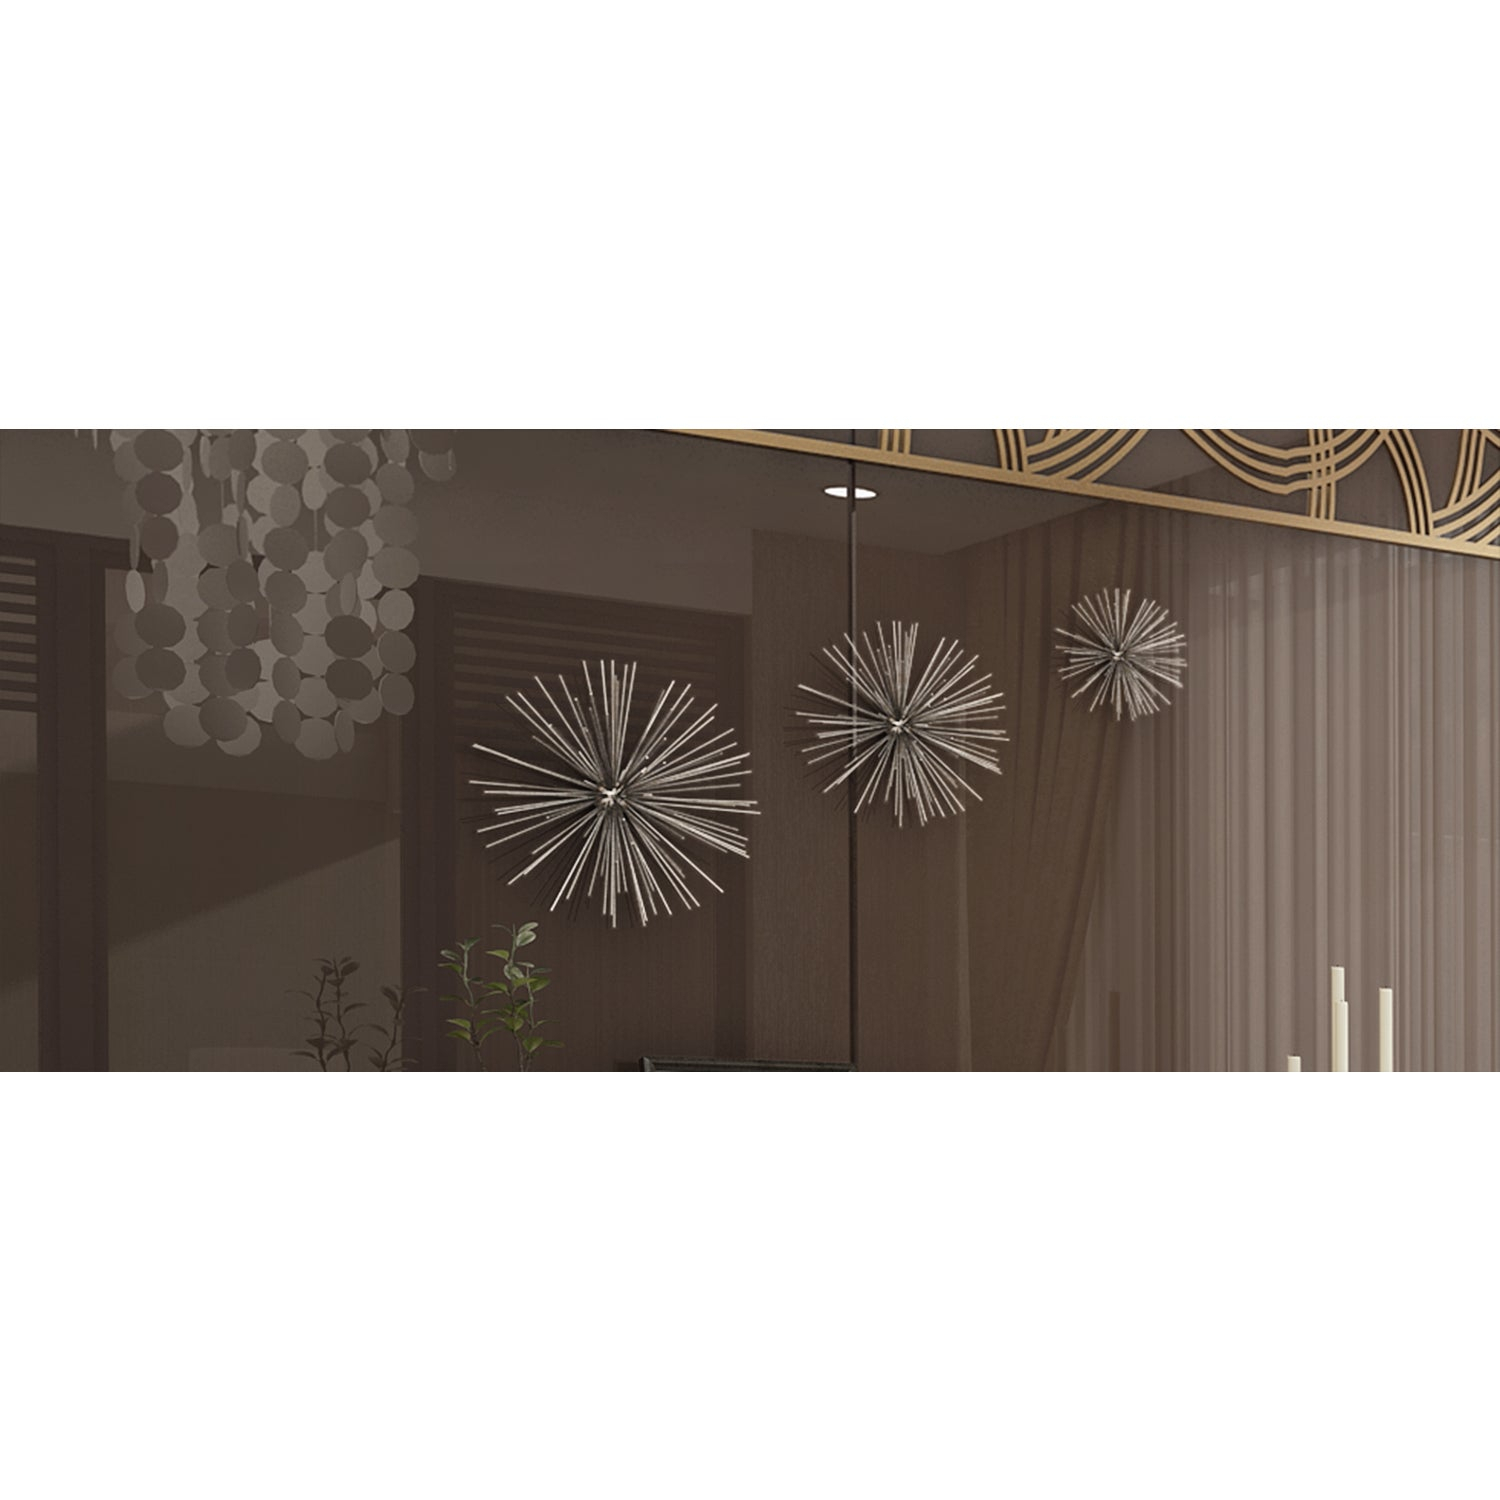 """Contemporary Style 3D Round Silver Metal Starburst Wall Decor Sculptures  Set Of 3 - 6"""", 9"""", 11"""" for Set Of 3 Contemporary 6, 9, And 11 Inch Gold Tin Starburst Sculptures (Image 7 of 30)"""